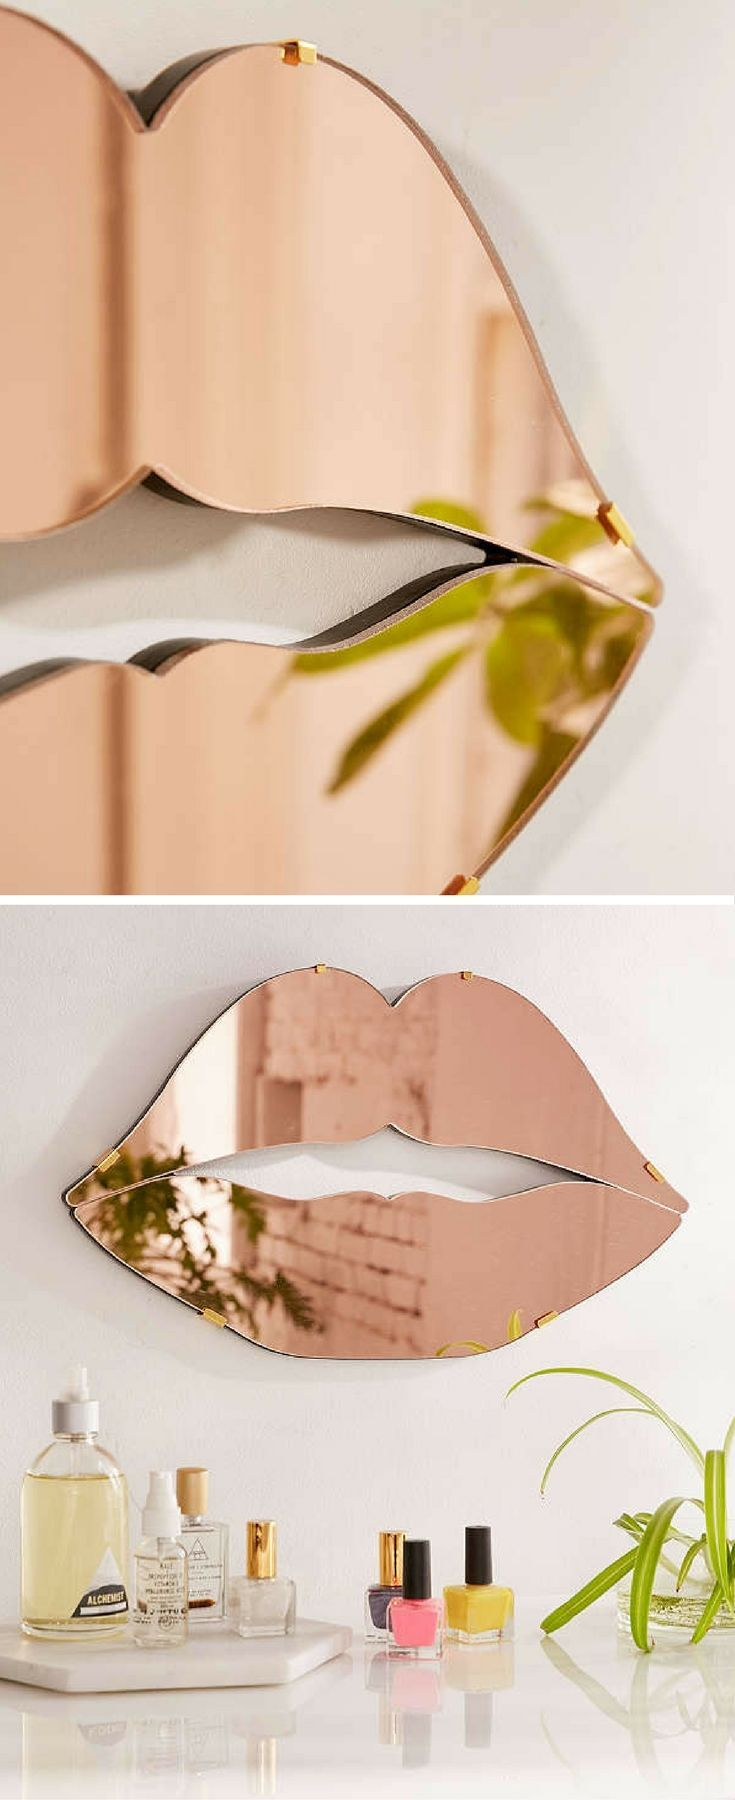 decorative mirrors for bathroom. This Mirror Would Look Great Over A Vanity | Urban Outfitters Lips Fun Bathroom Decor Decorative Rose Gold Mirrors For